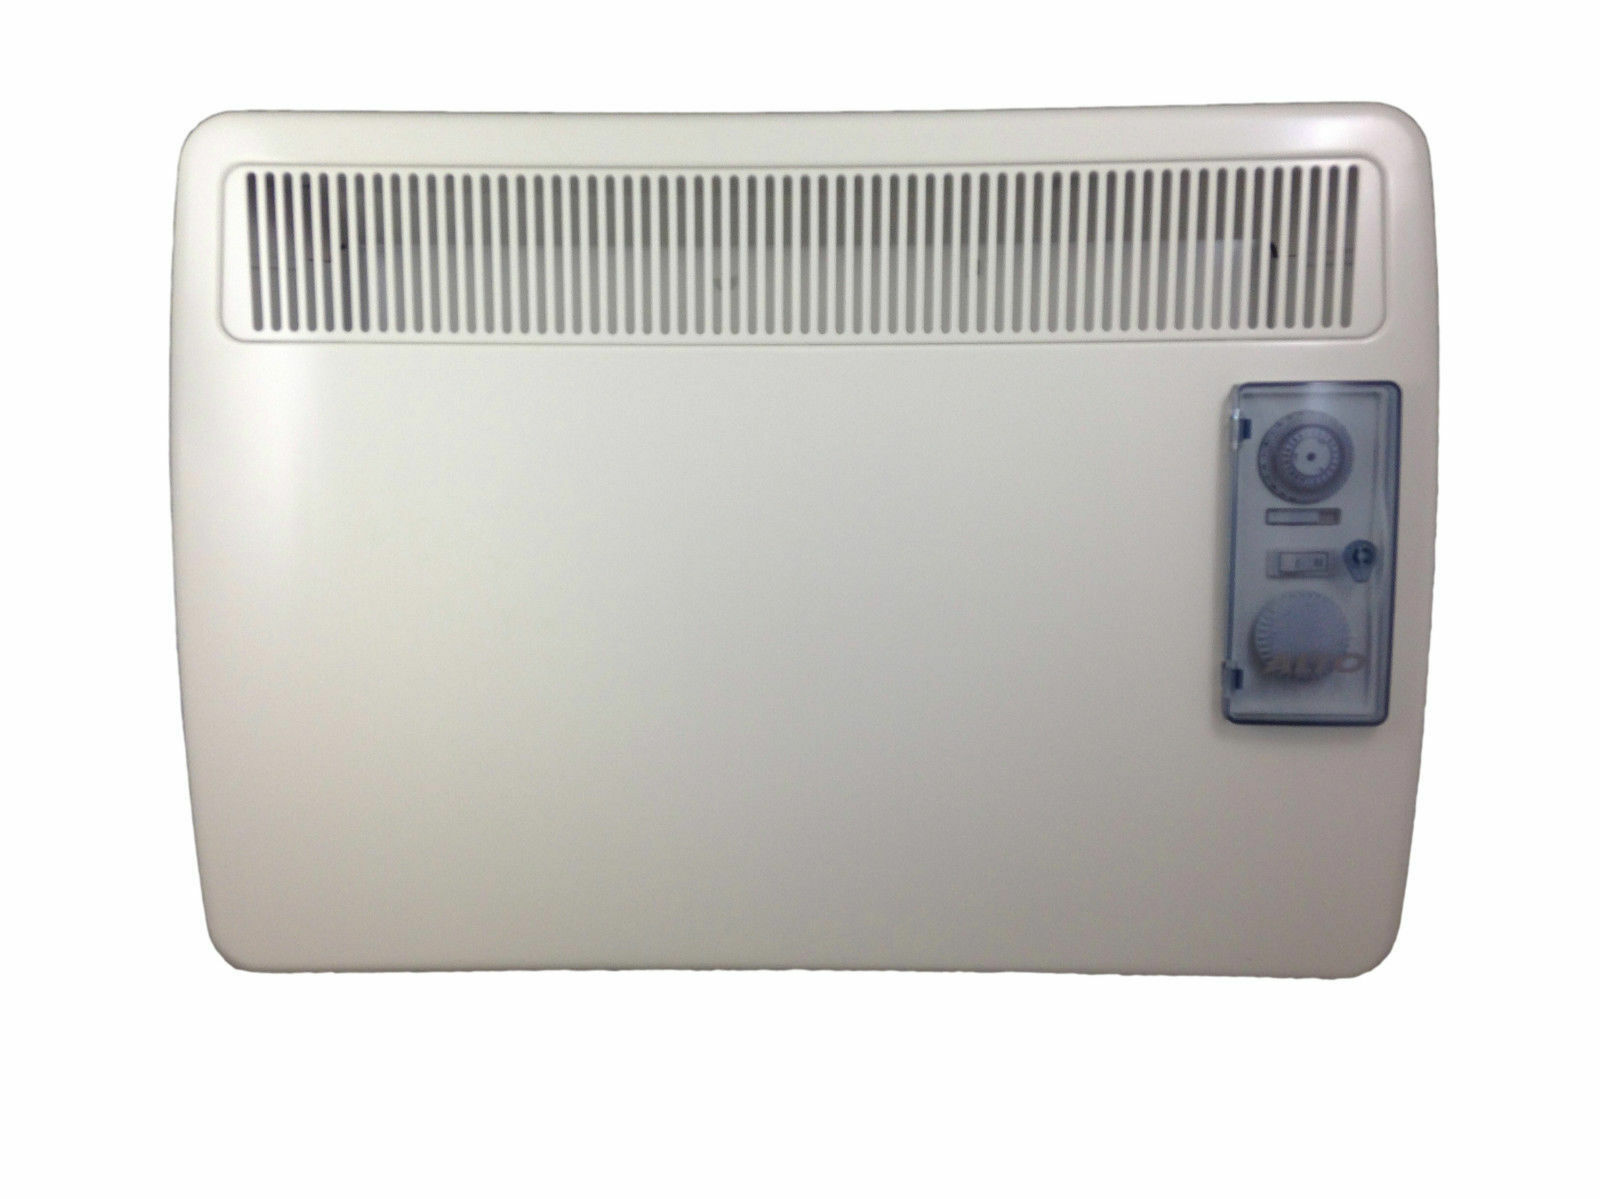 Newlec Wall Mounted Electric Panel Convector Heater Ebay